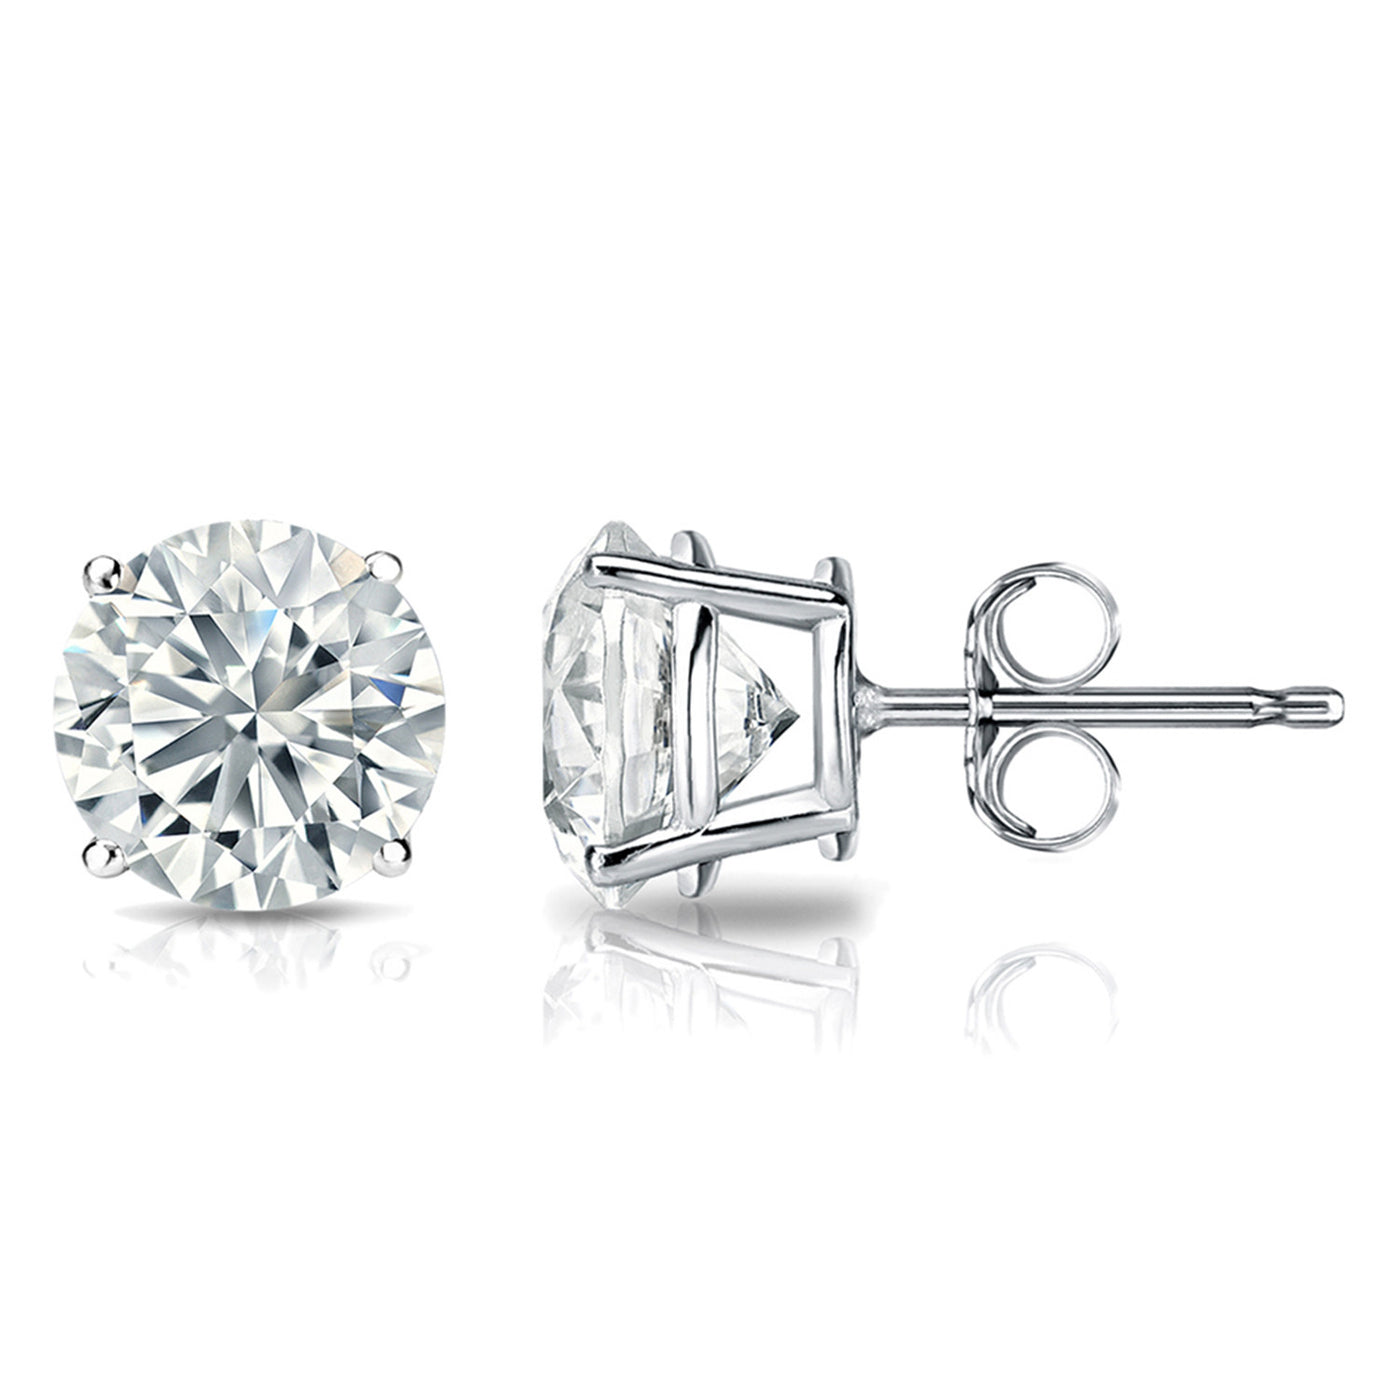 1/4 Carat Round 14k White Gold 4 Prong Basket Set Diamond Solitaire Stud Earrings ( Premium Quality)